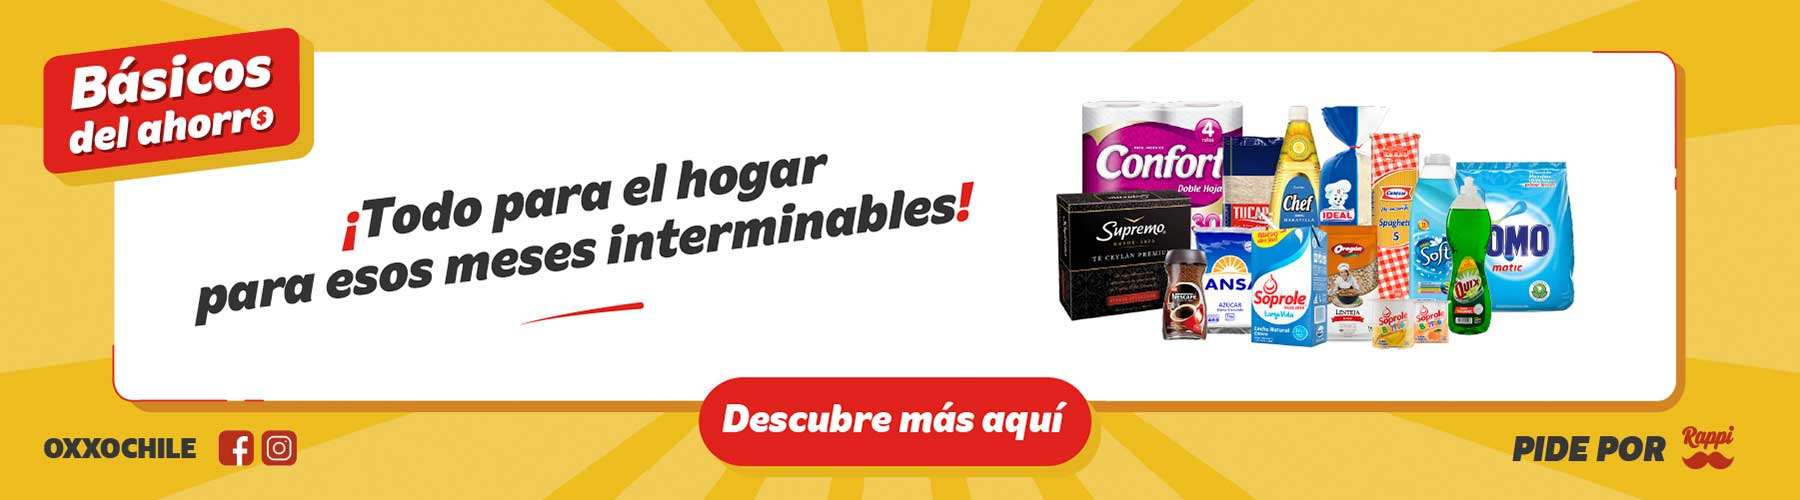 OXXO Chile Home Banner 2 P4 2021